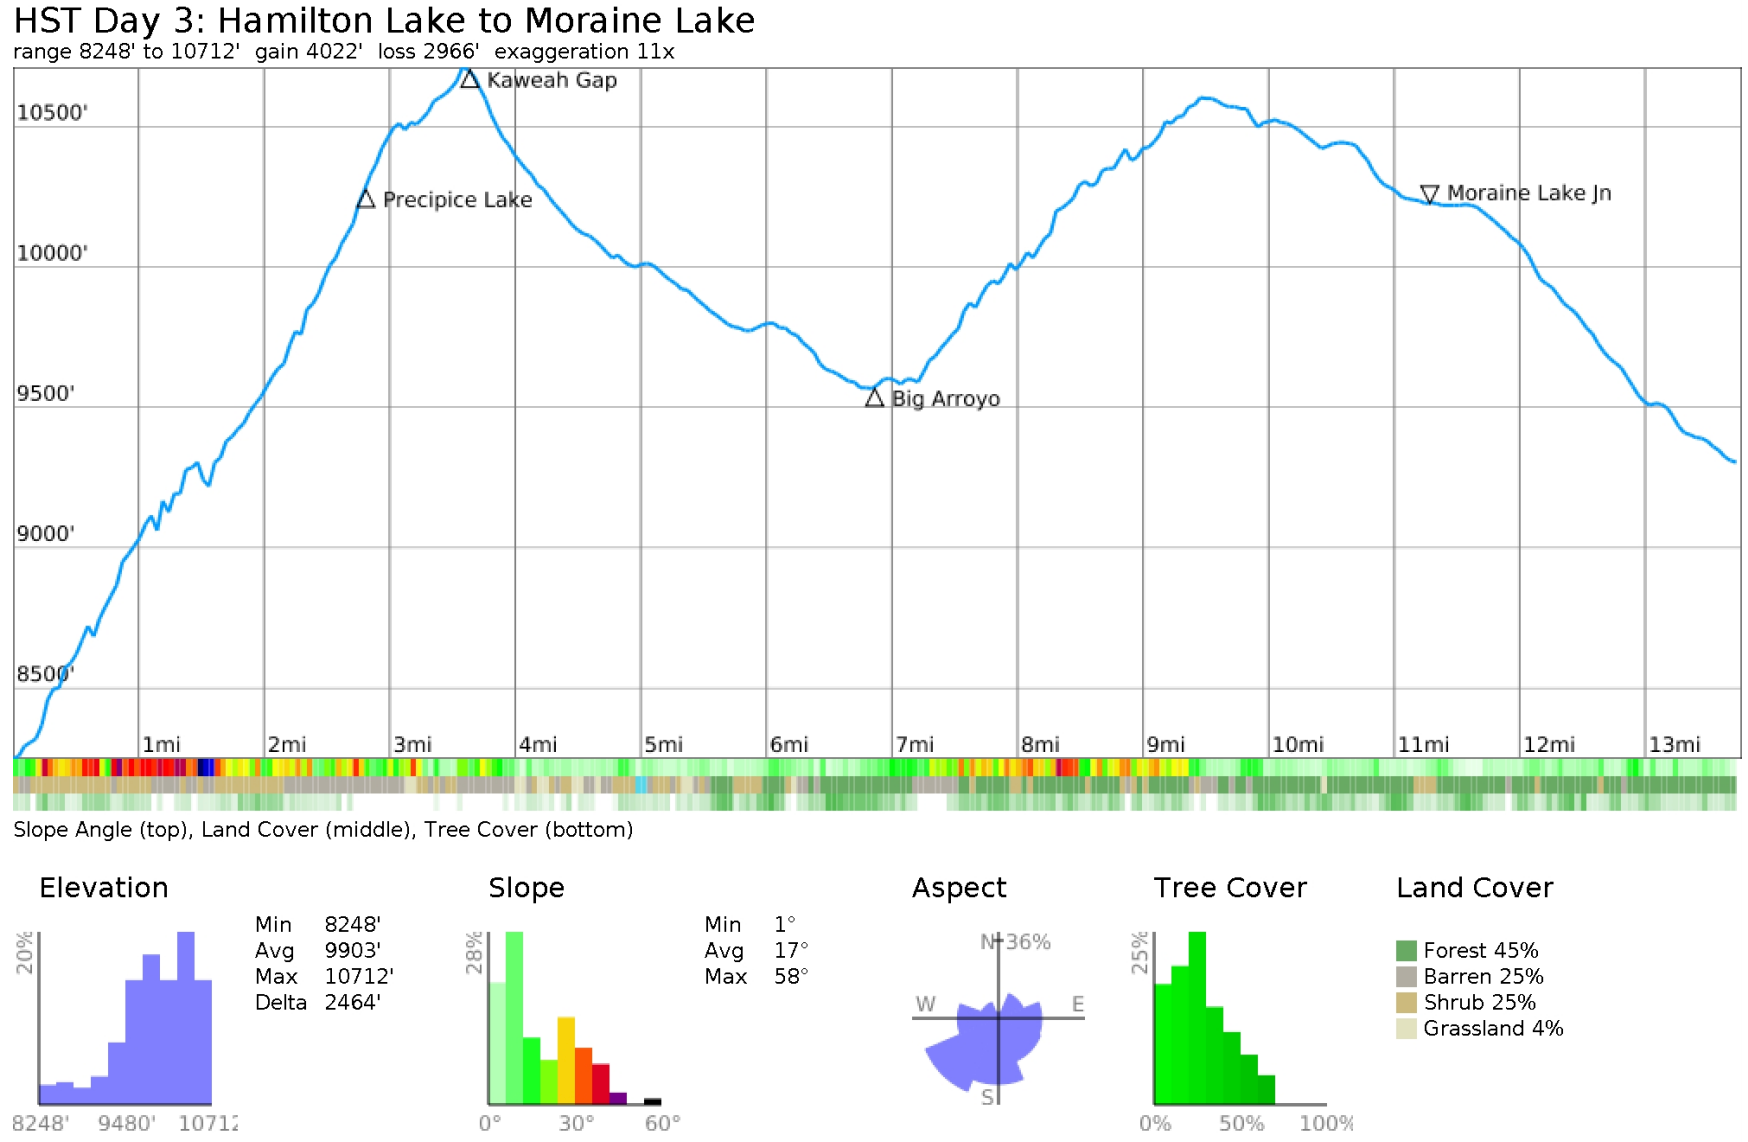 kaweah-gap-backpacking-elevation-profile.jpg